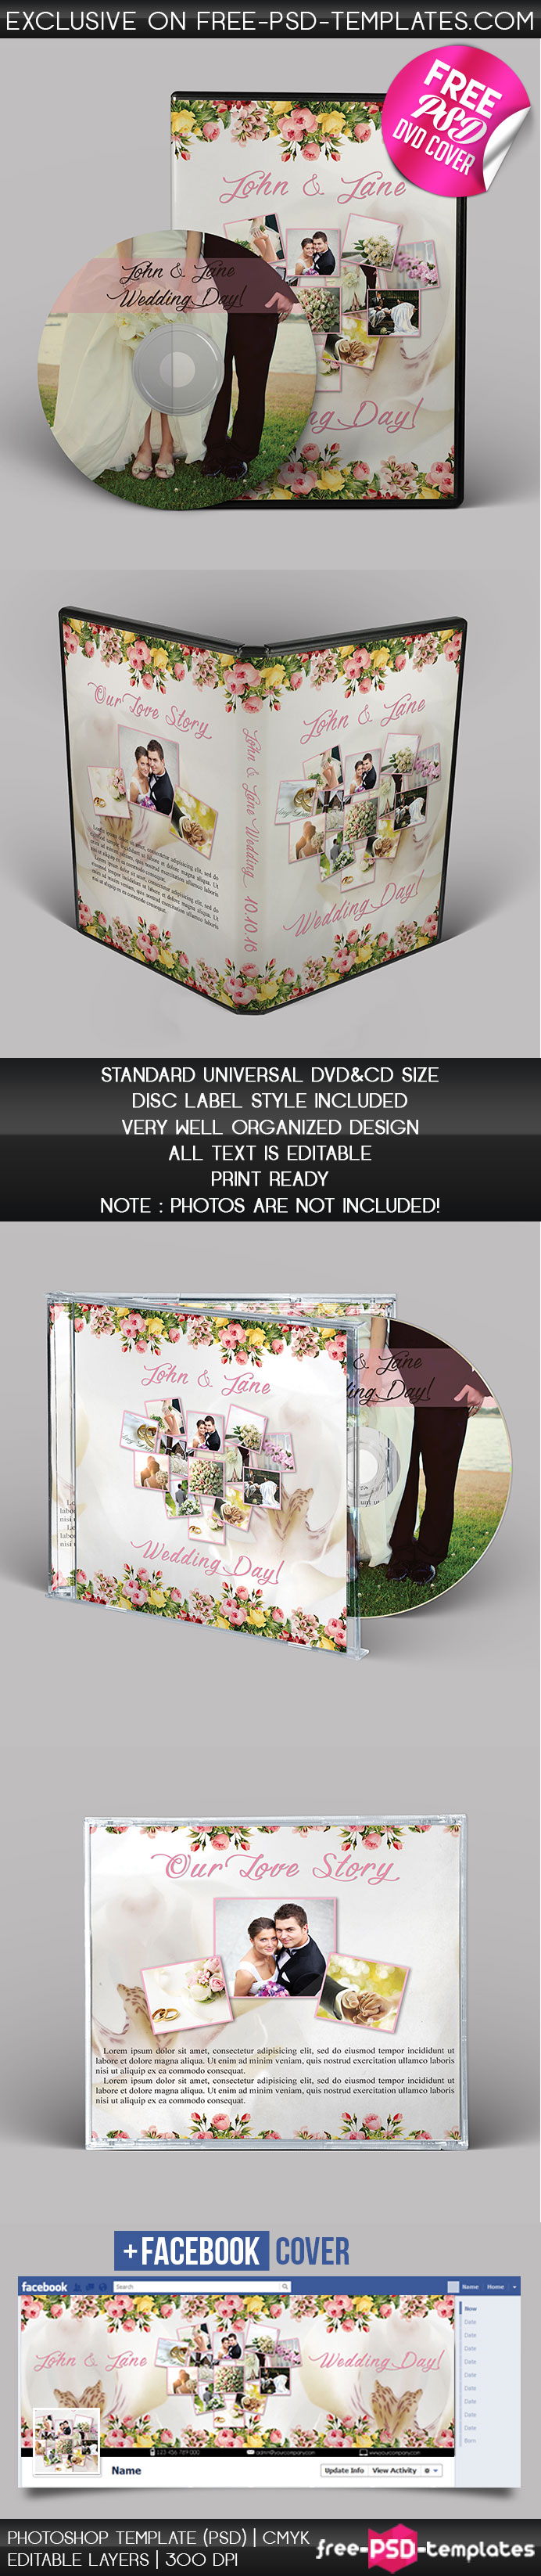 Cd box template download free vector art stock graphics amp images - Preview_dvd_cd_cover_